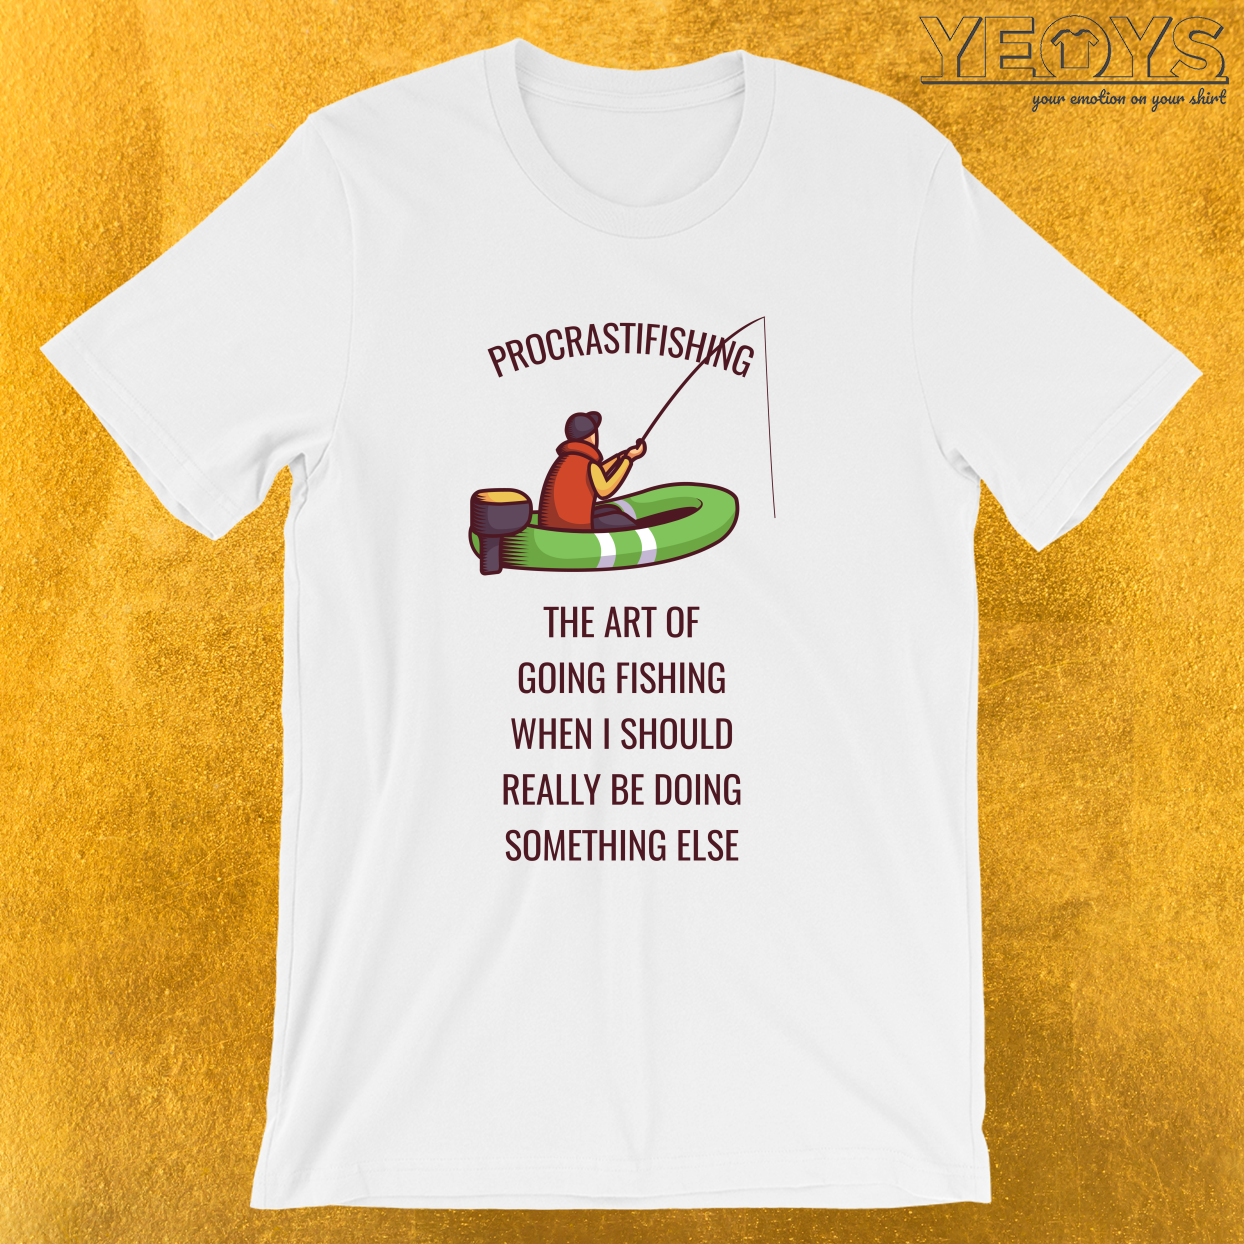 Procrastifishing – The Art Of Fishing – Funny Fishing Tee